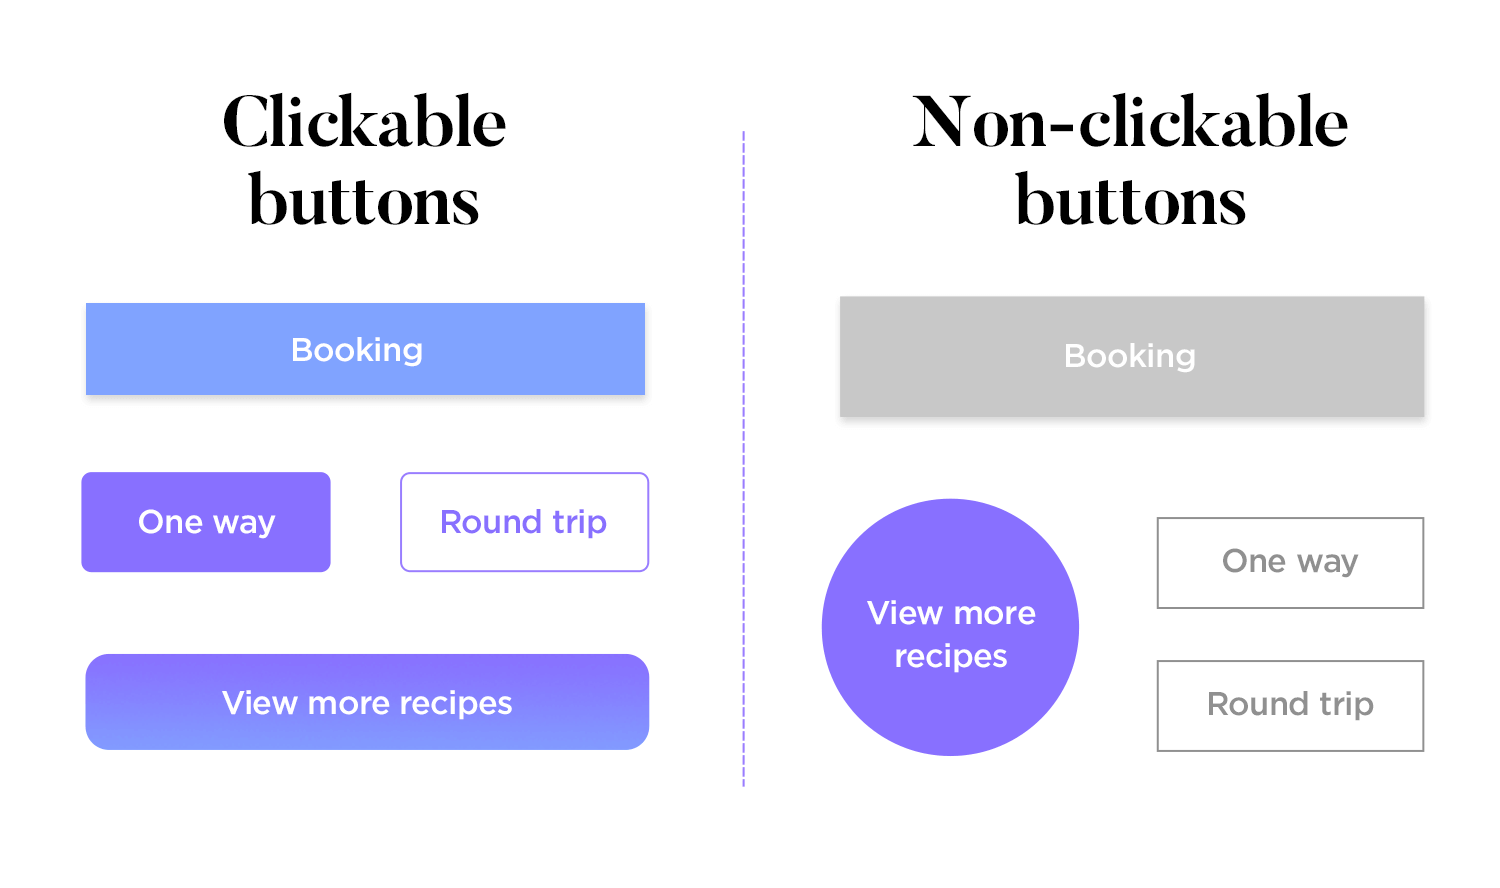 make buttons look clickable in the ui